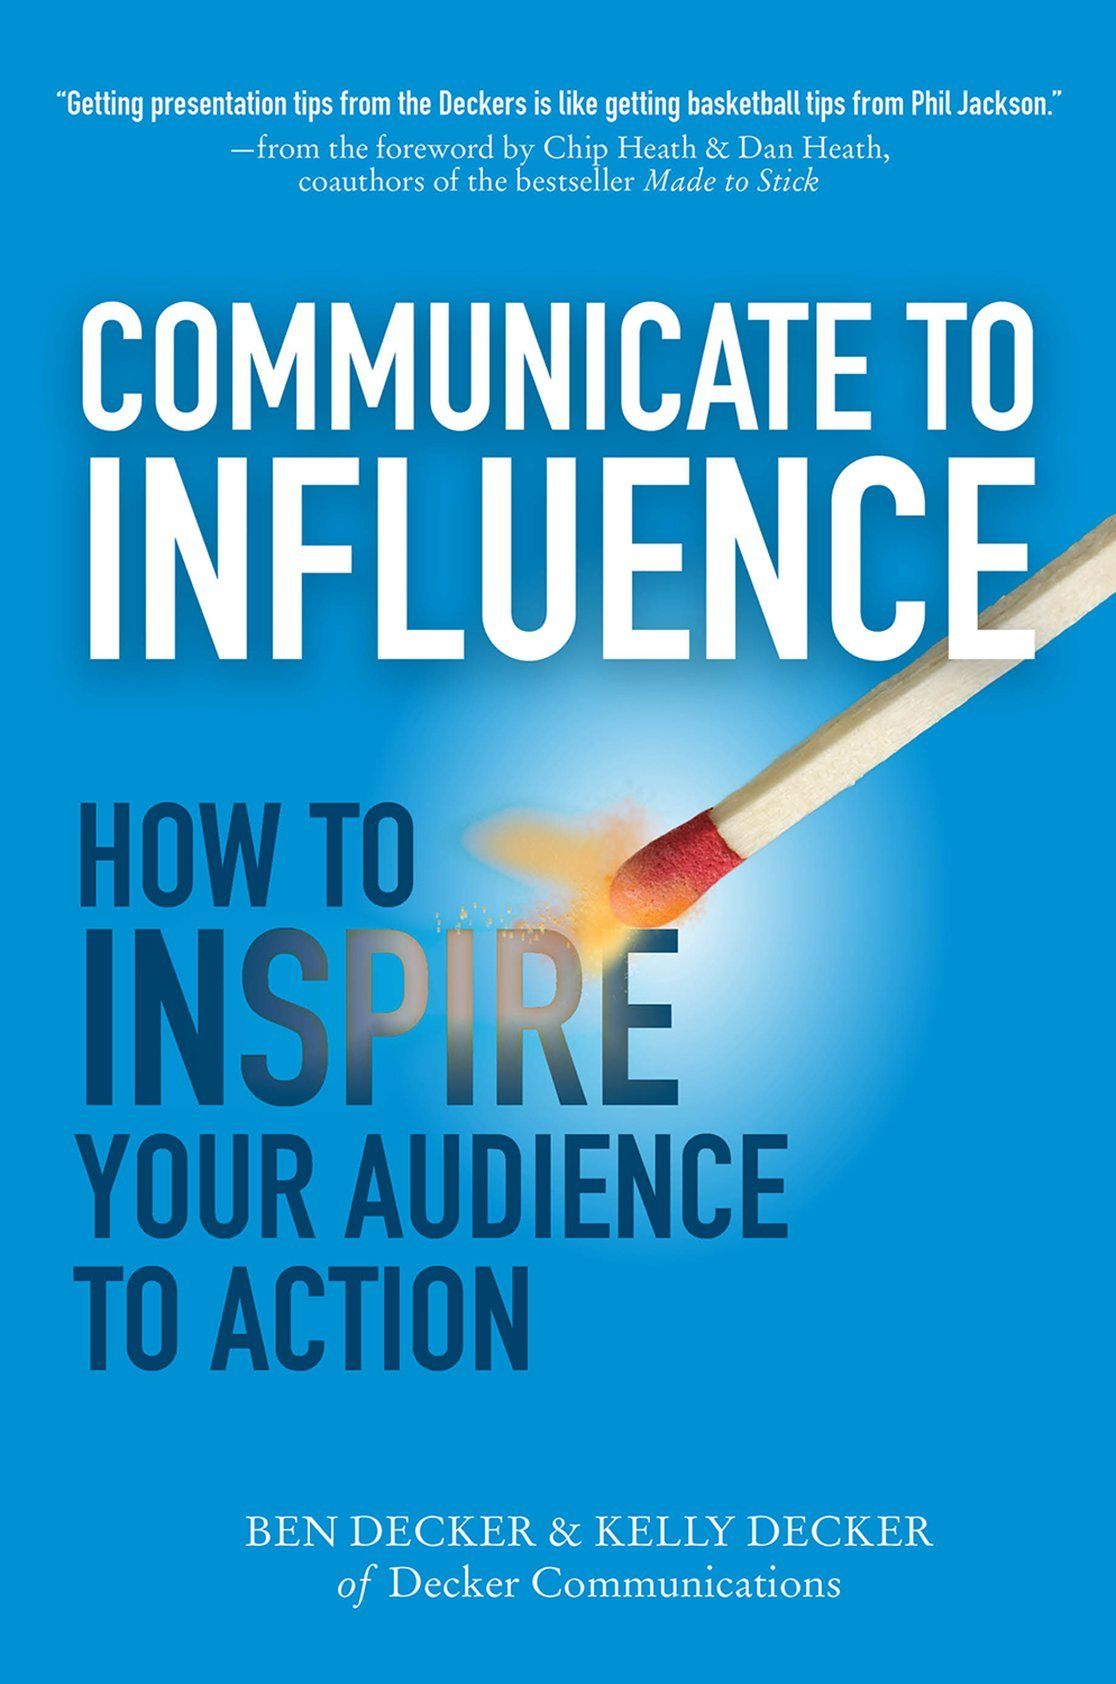 Communicating With Influence | Communicate to Influence by Ben Decker, Kelly Decker